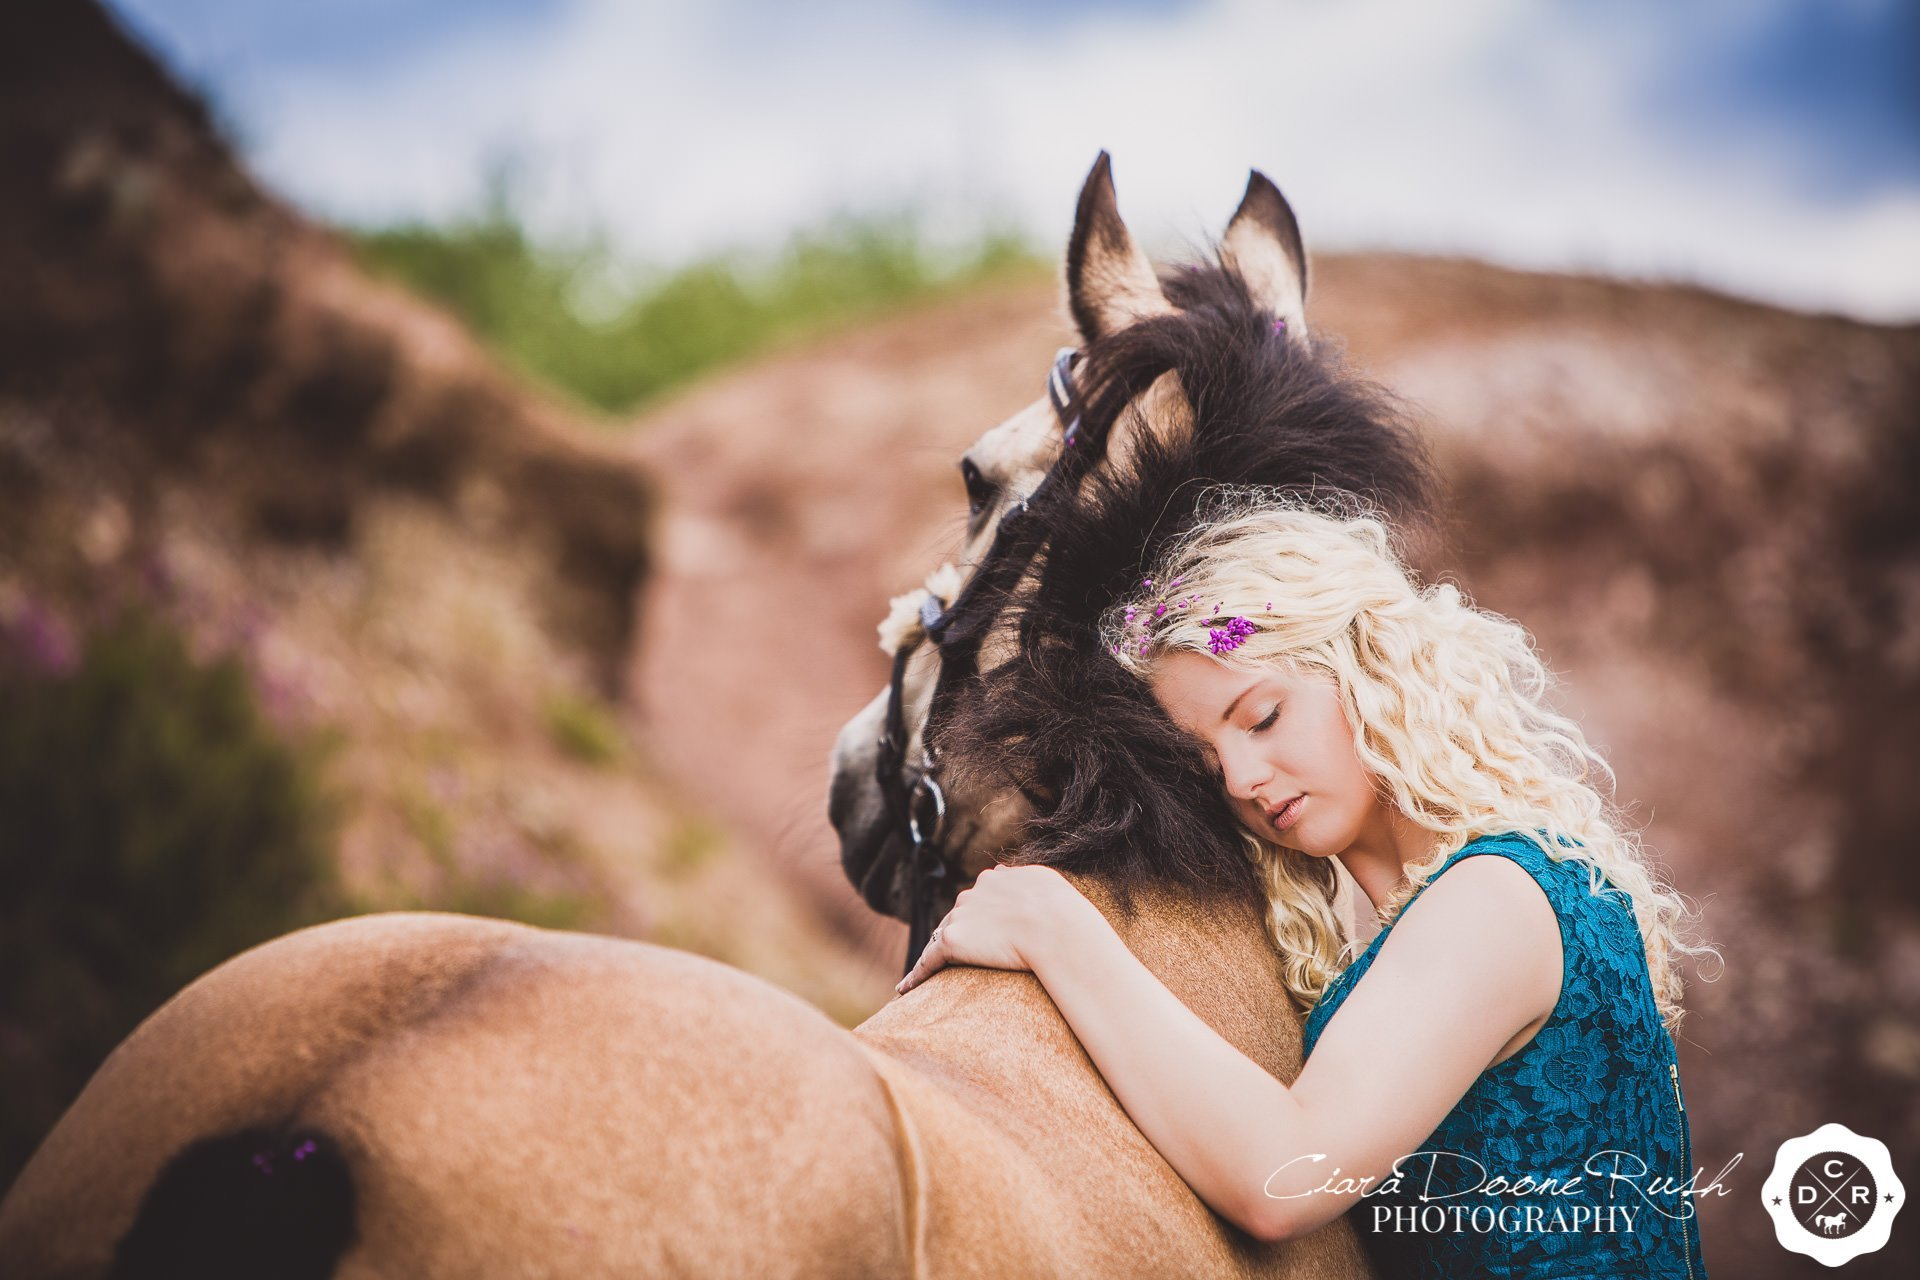 A girl and her pony on a mud to make up horse and rider photo shoot